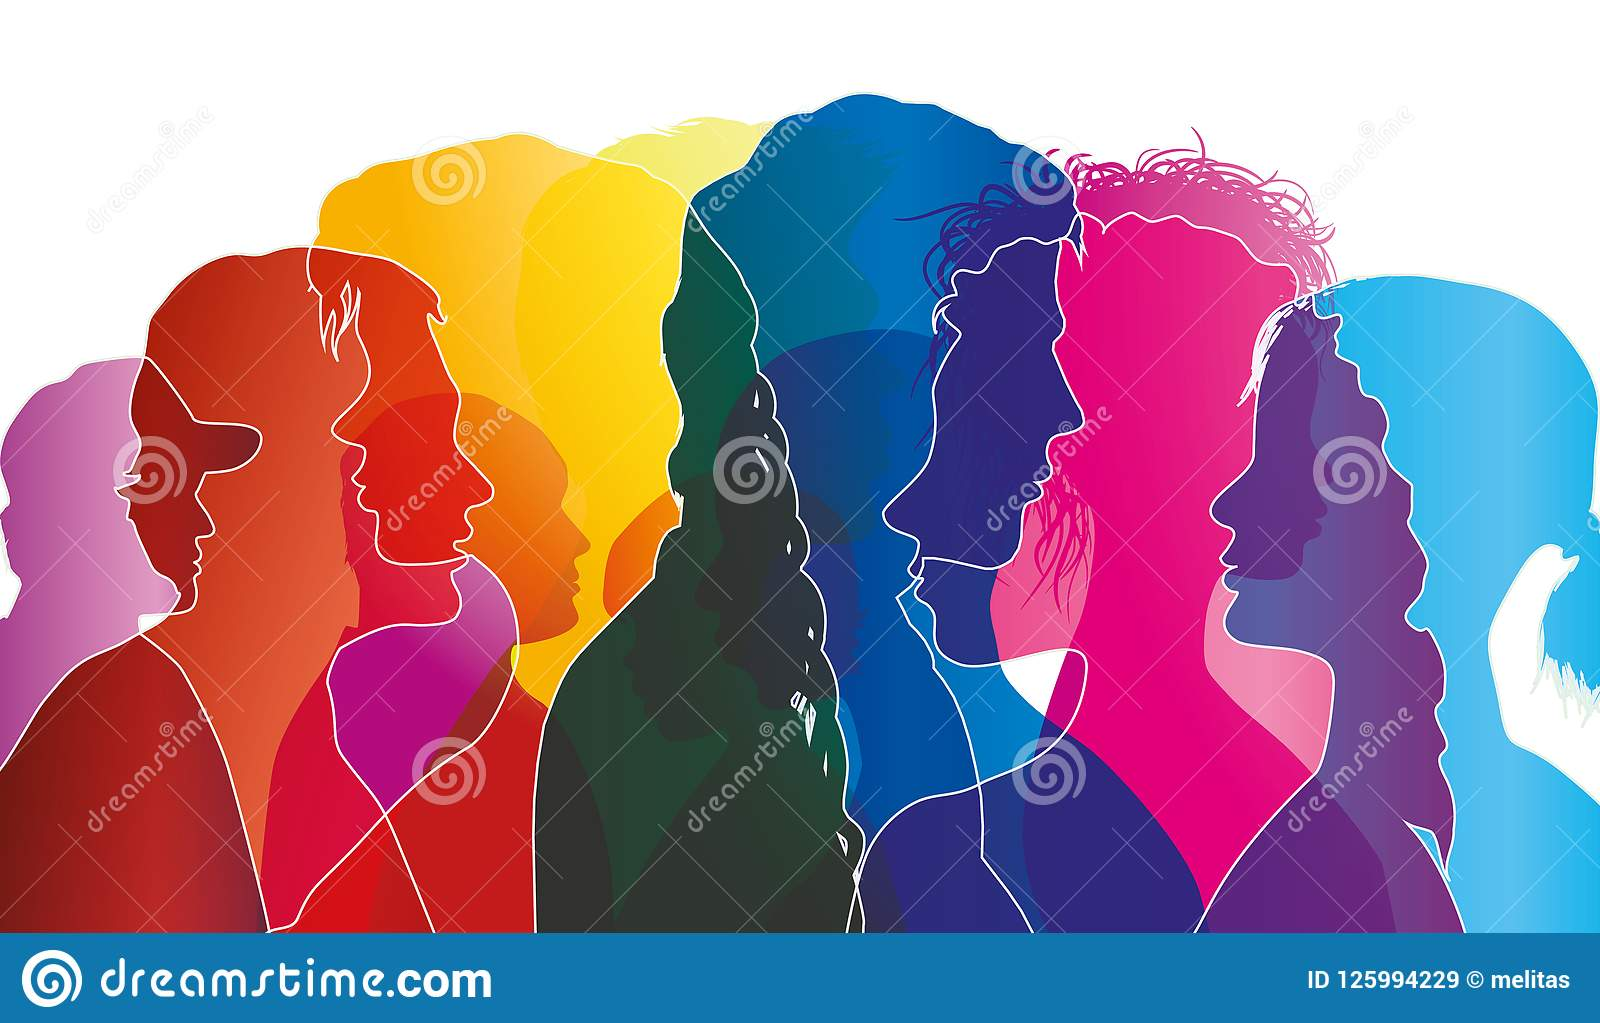 abstract vector group of crowded people mob of people confusion of